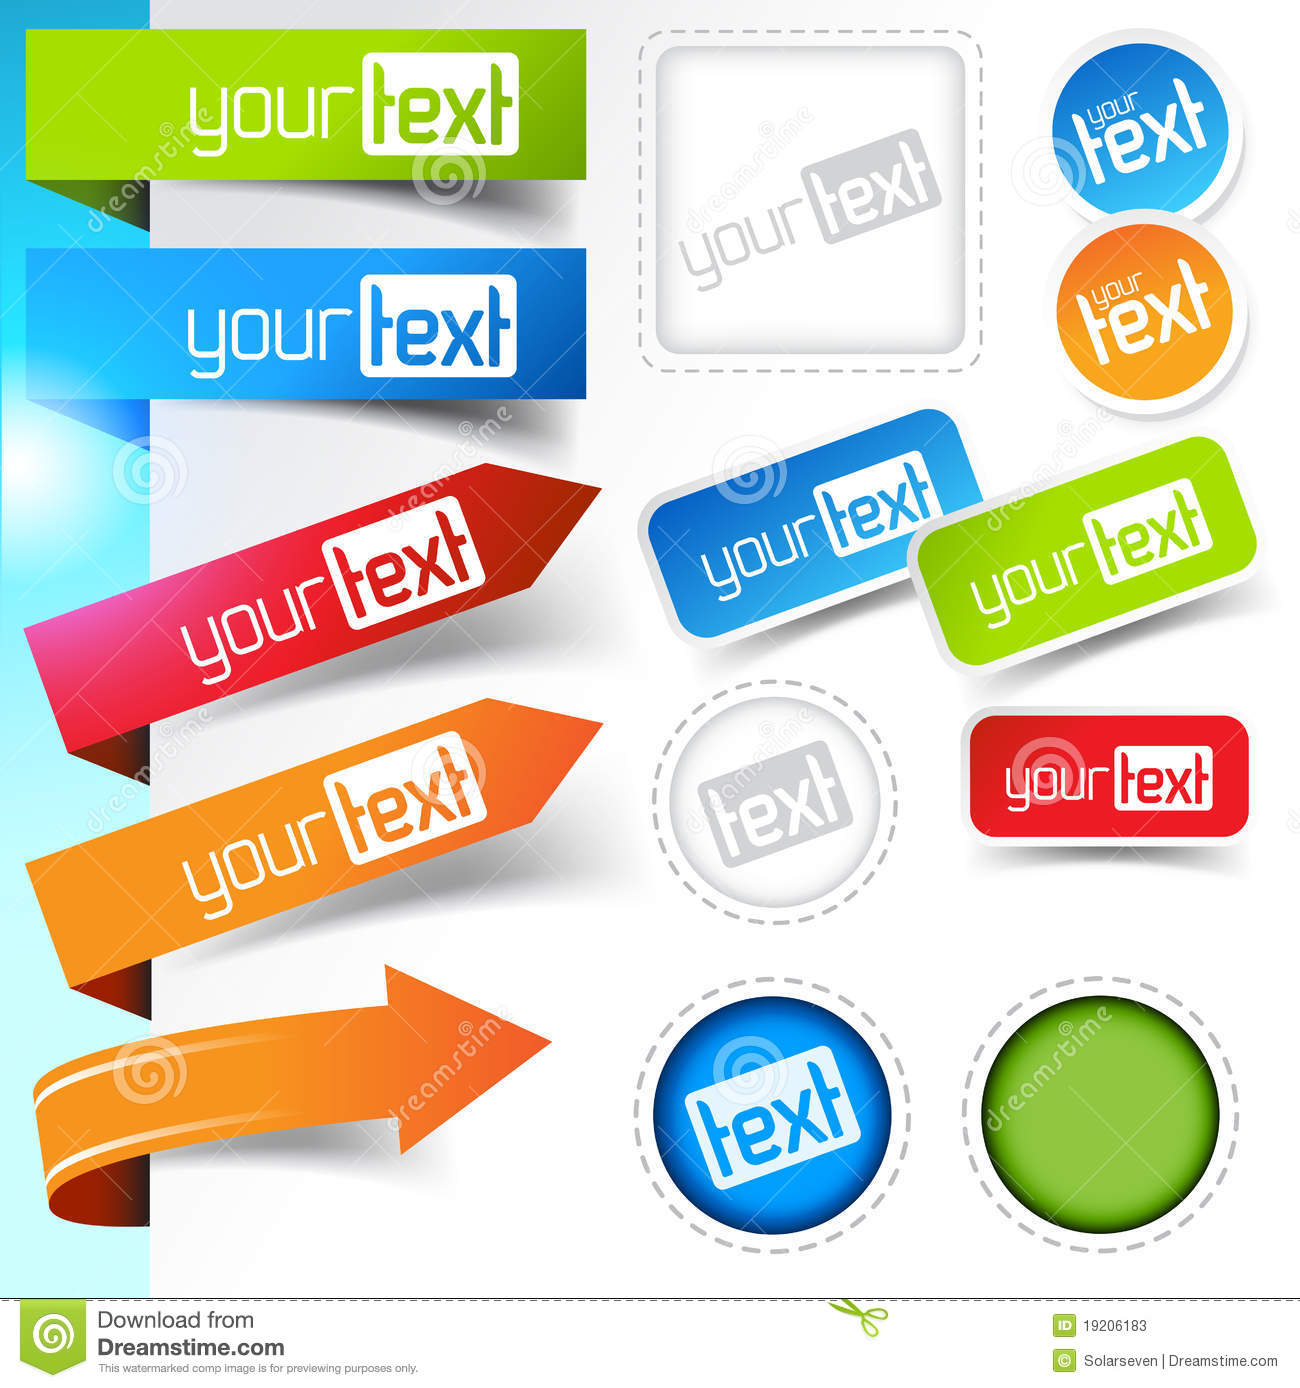 Vector Illustration Web Designs: Web Page Sticker Designs Stock Vector. Image Of Collection